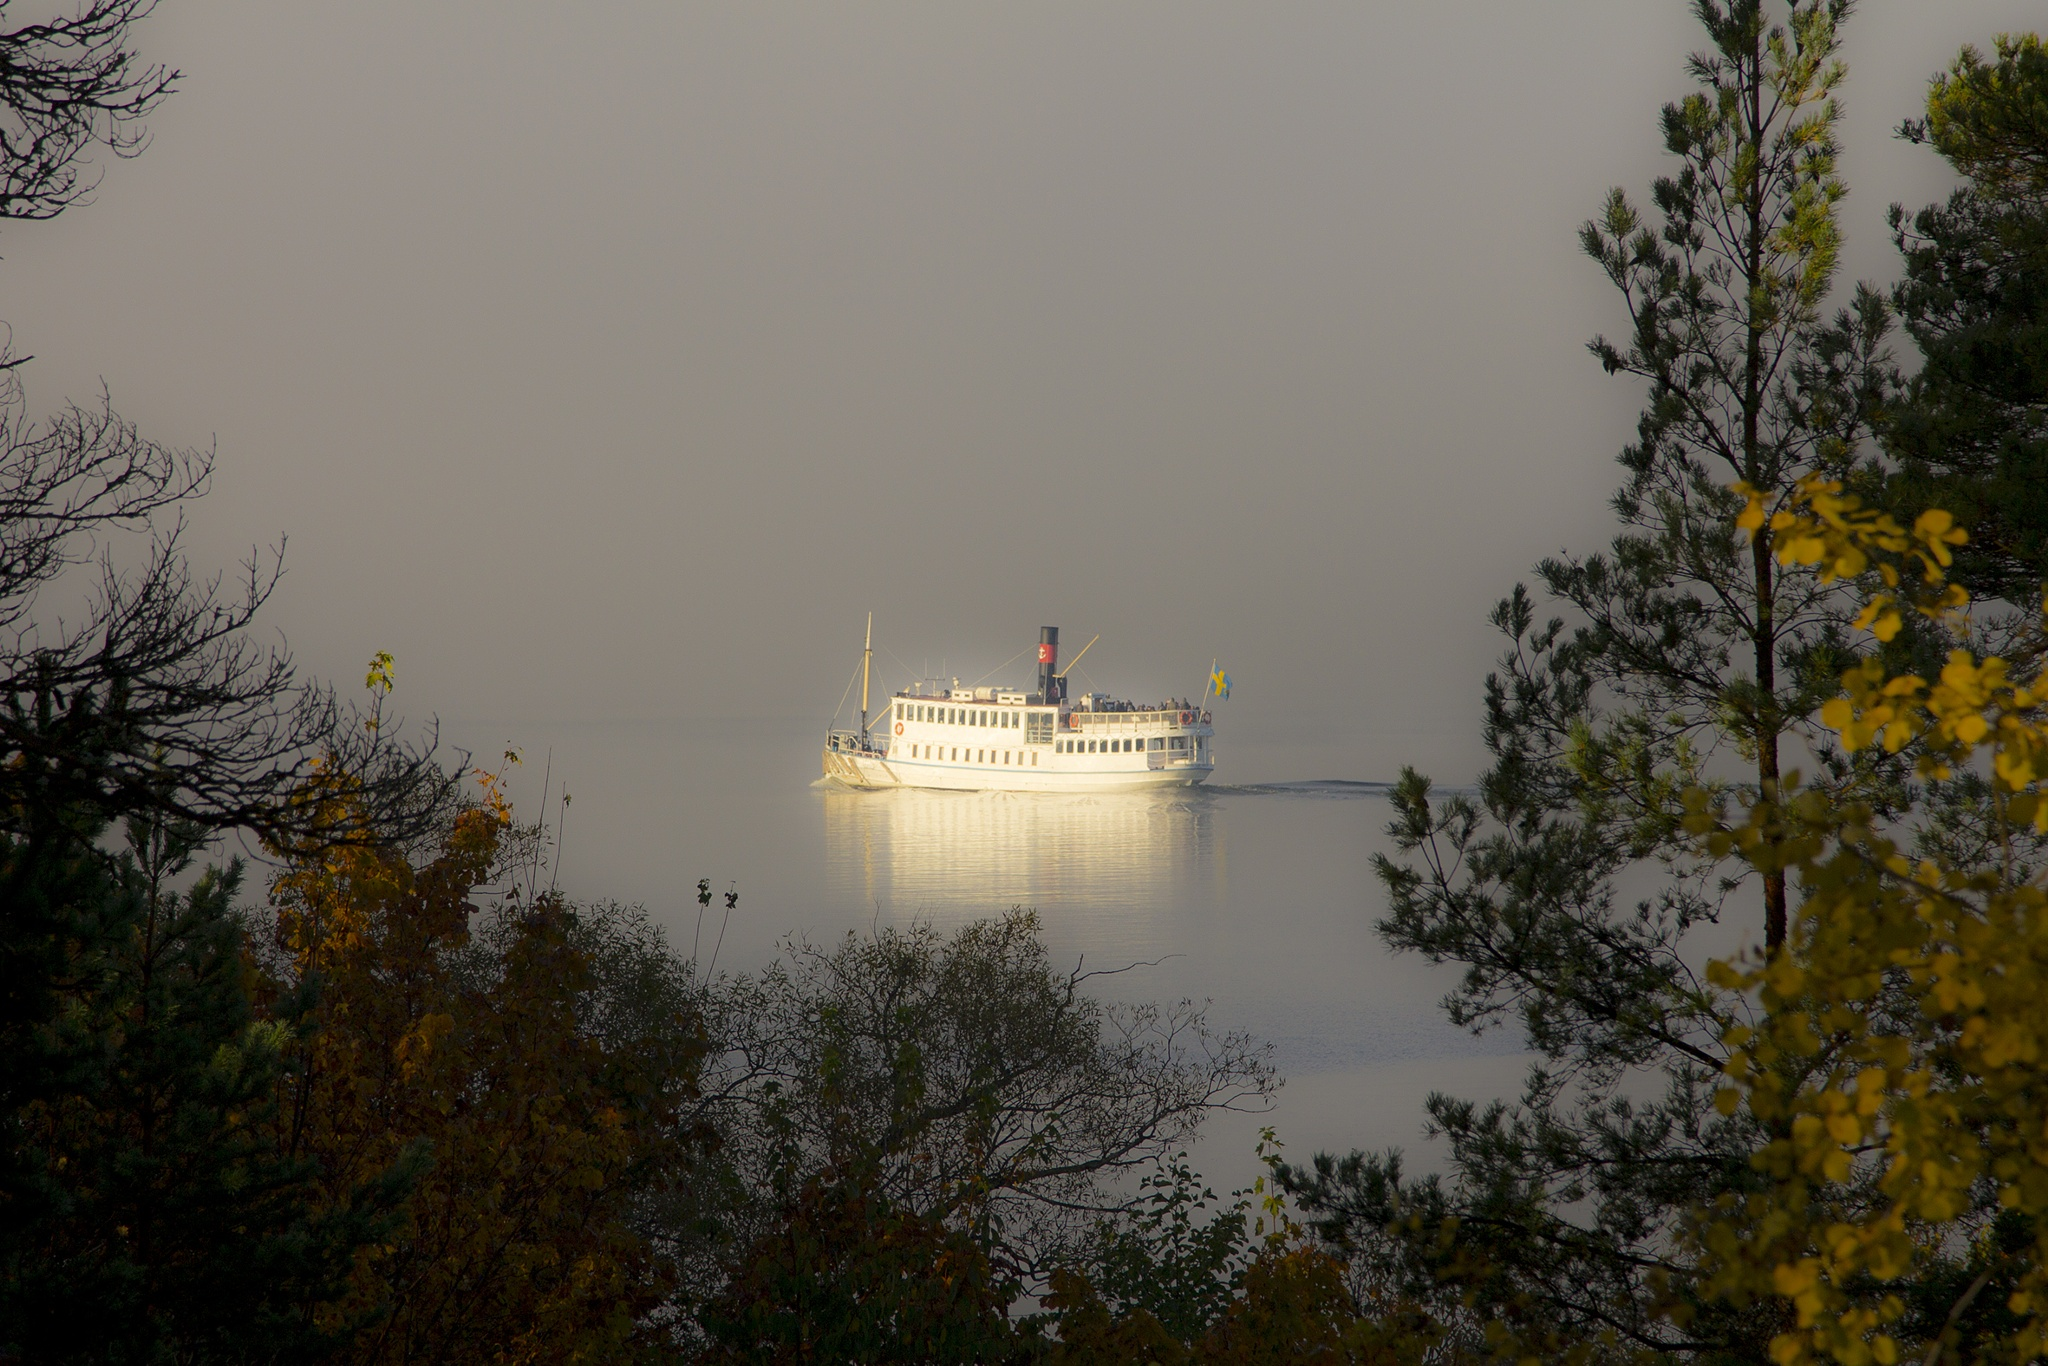 The M/S Prins Carl Filip on a peaceful cruise by mikaelericsson